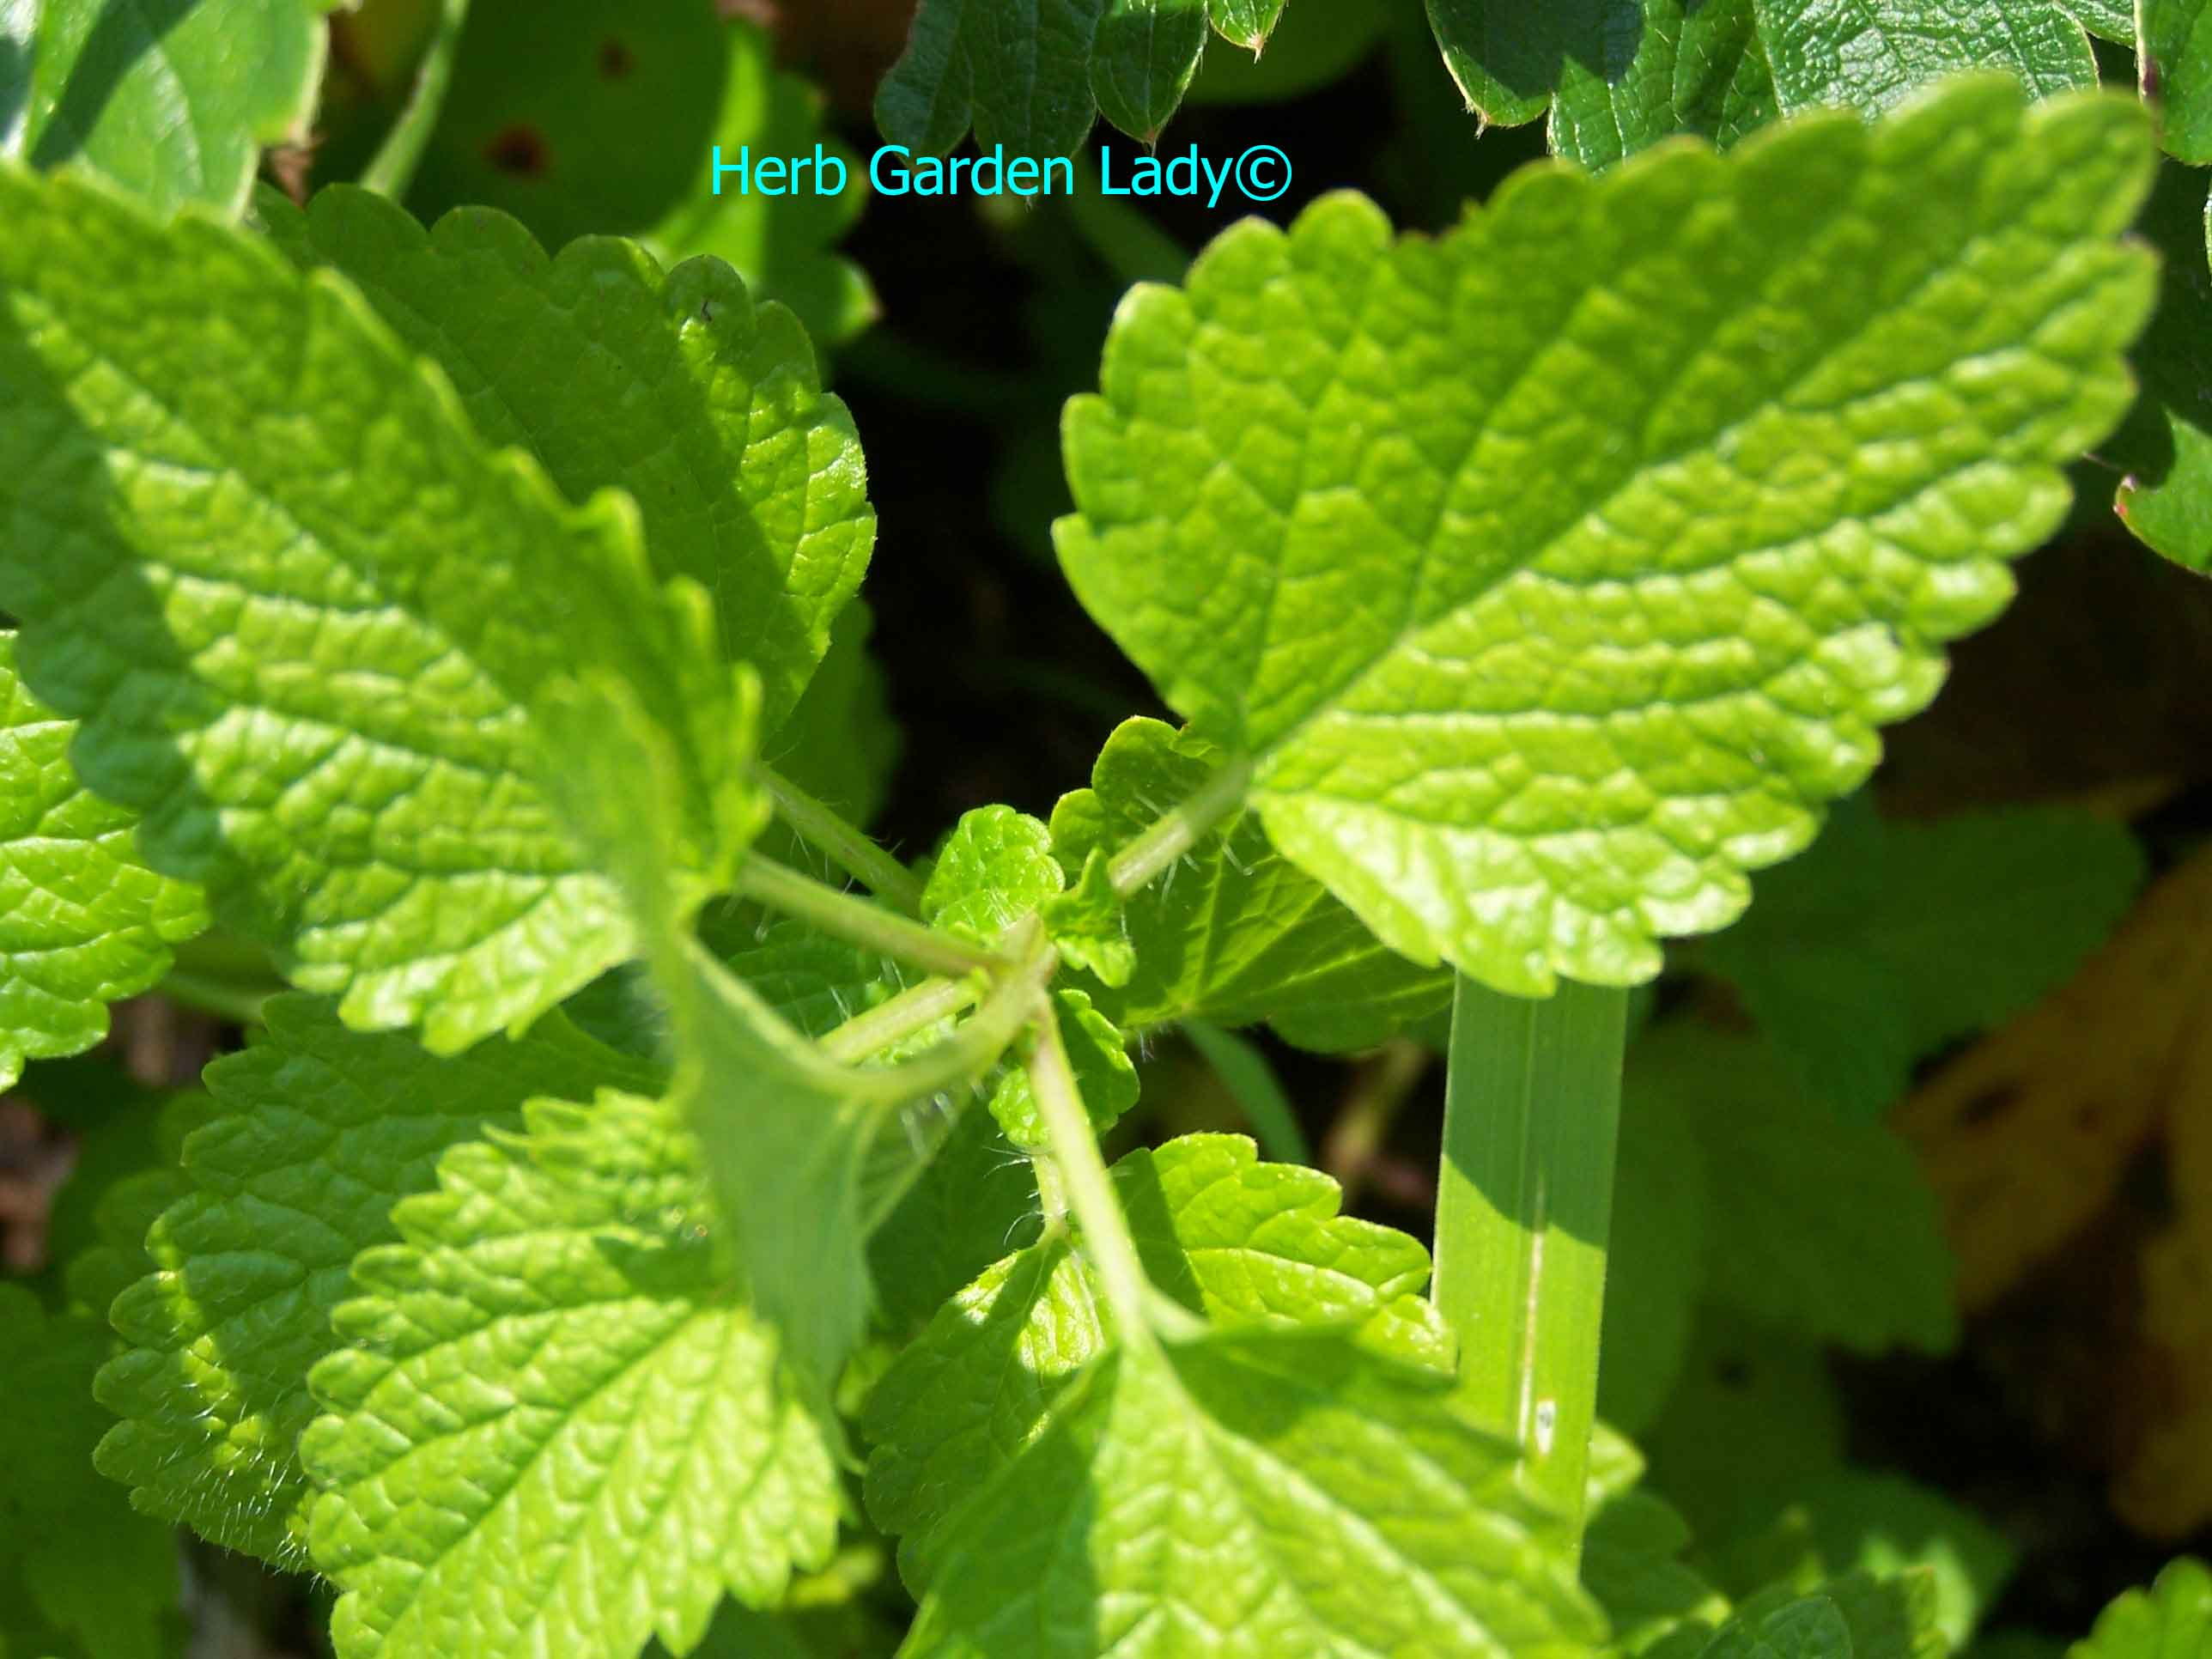 Melissa also known as lemon balm is used in aromatherapy for digestion, fever, menstrual problems, nervous tension, neuralgia and respiratory problems.